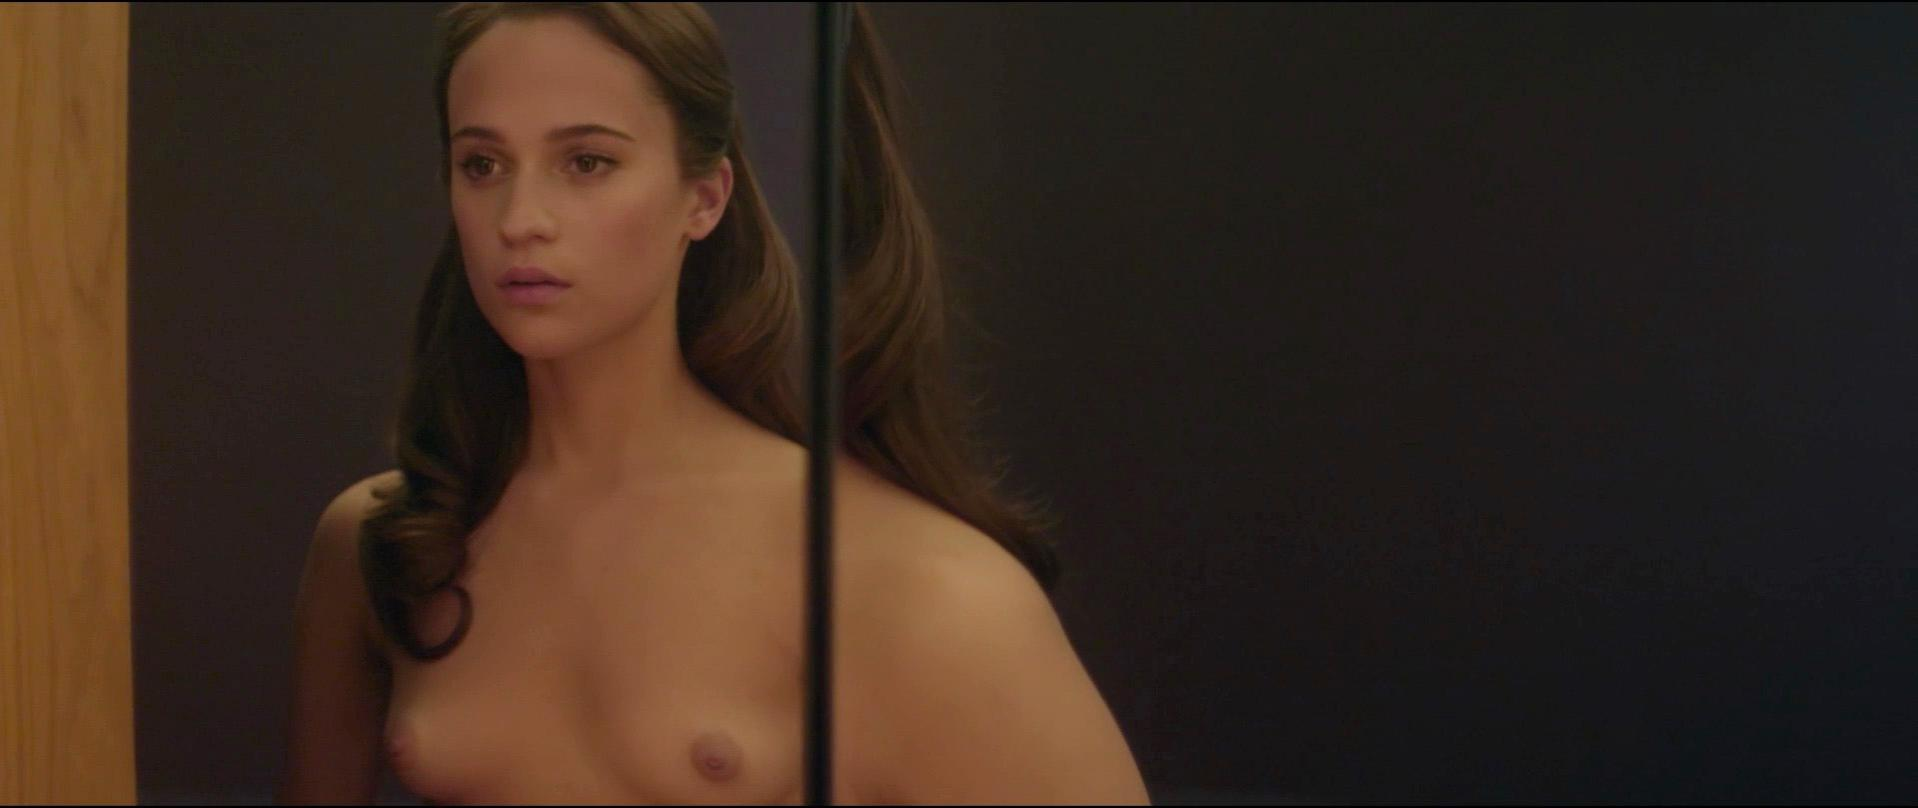 Alicia Vikander nude - Ex Machina (2015)